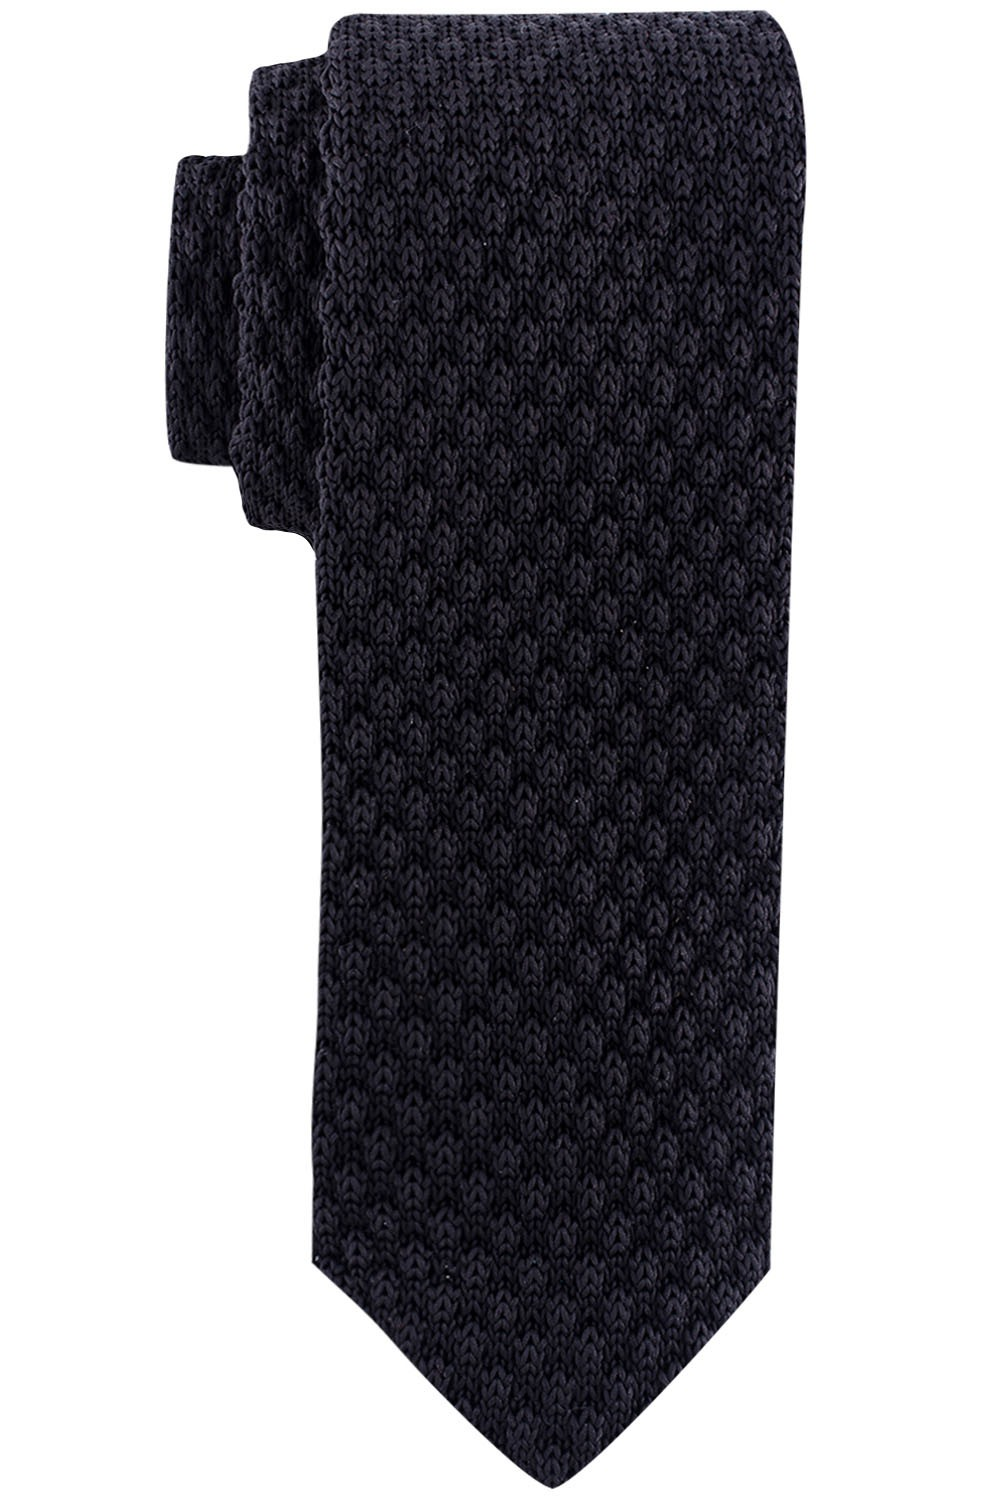 Solid Black Slim Handmade Knitted Necktie